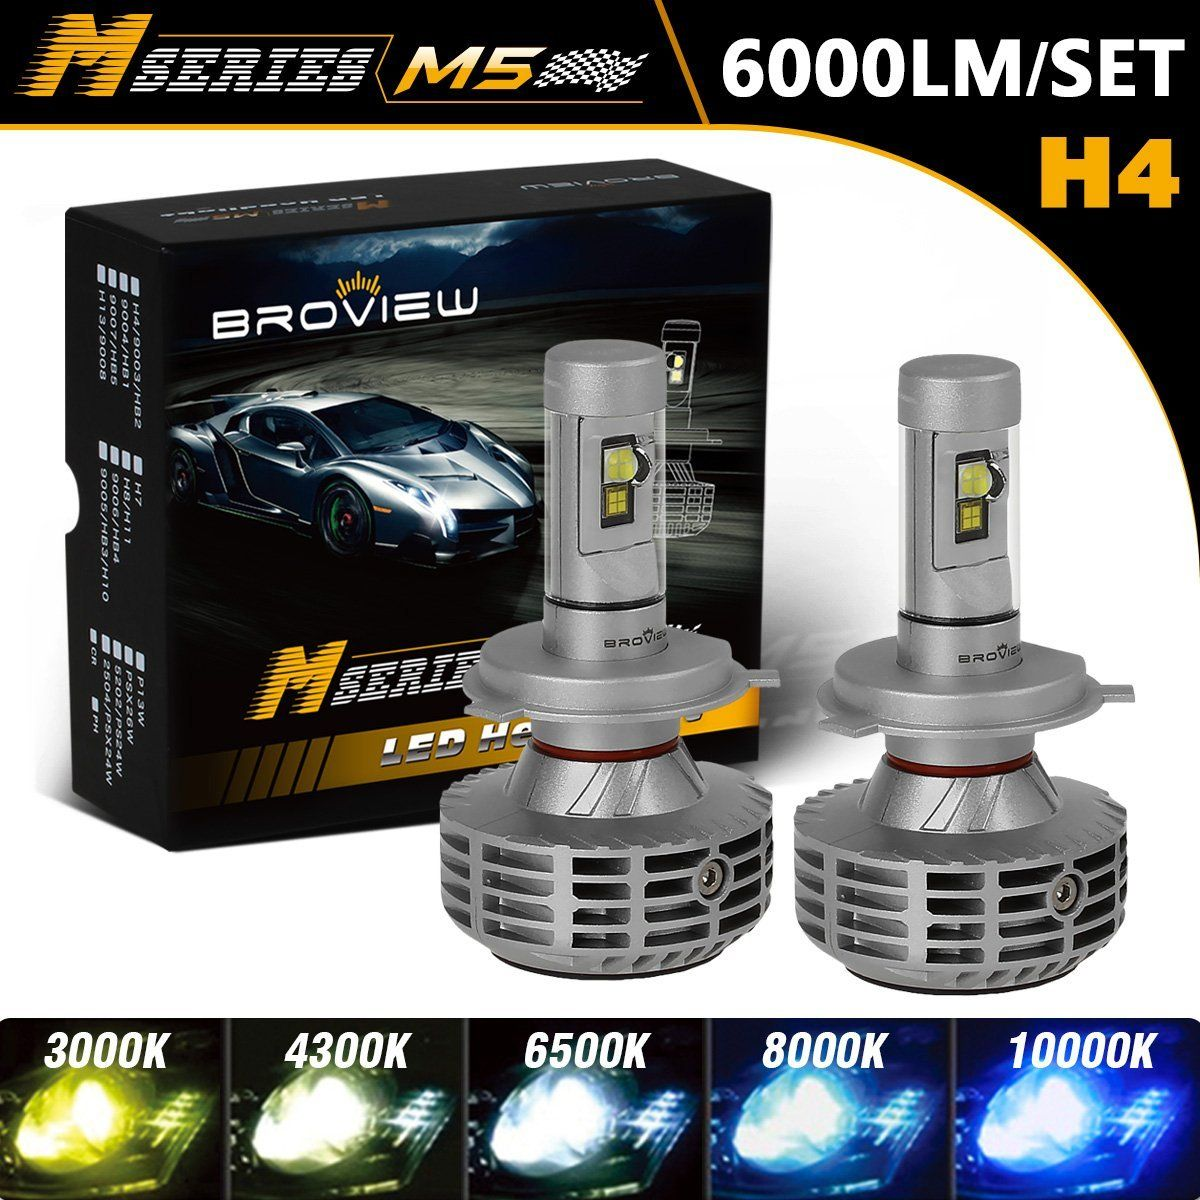 Broview M5 H4 Led Headlight Bulb Conversion Kit 6 000 Lm 3 000